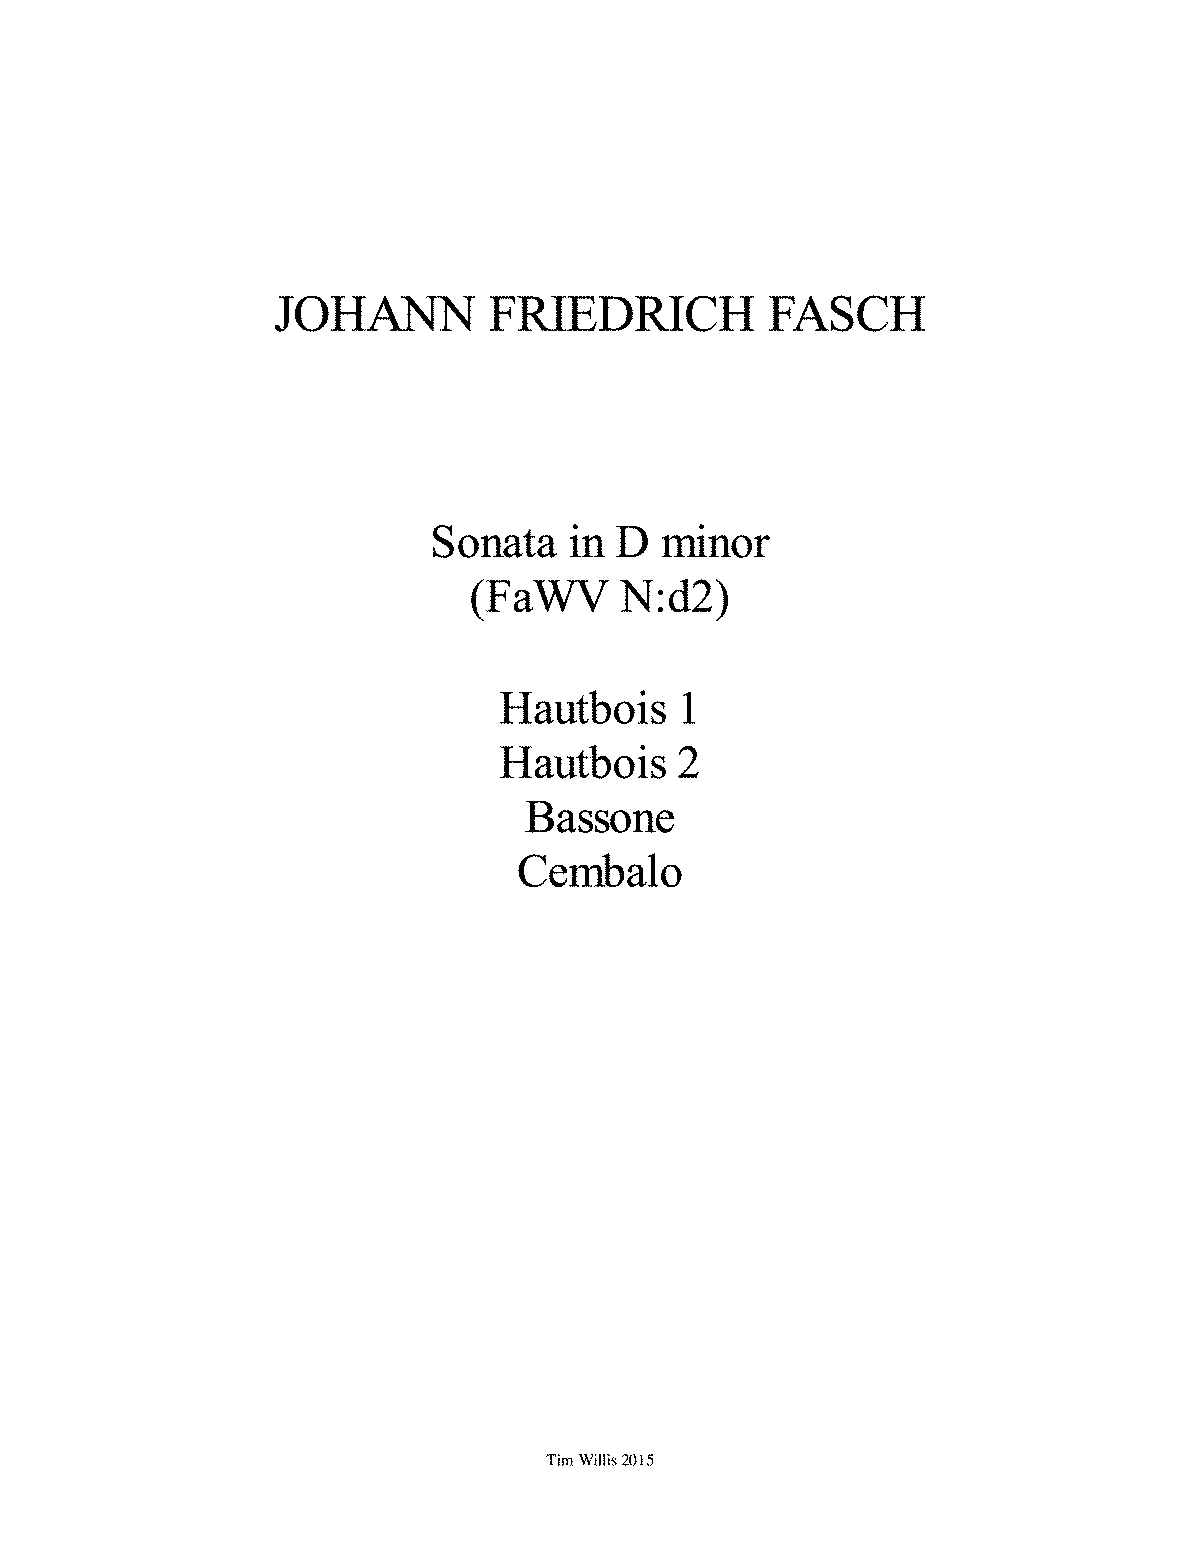 PMLP382674-Fasch - Sonata in D minor. FaWV N.d2.pdf